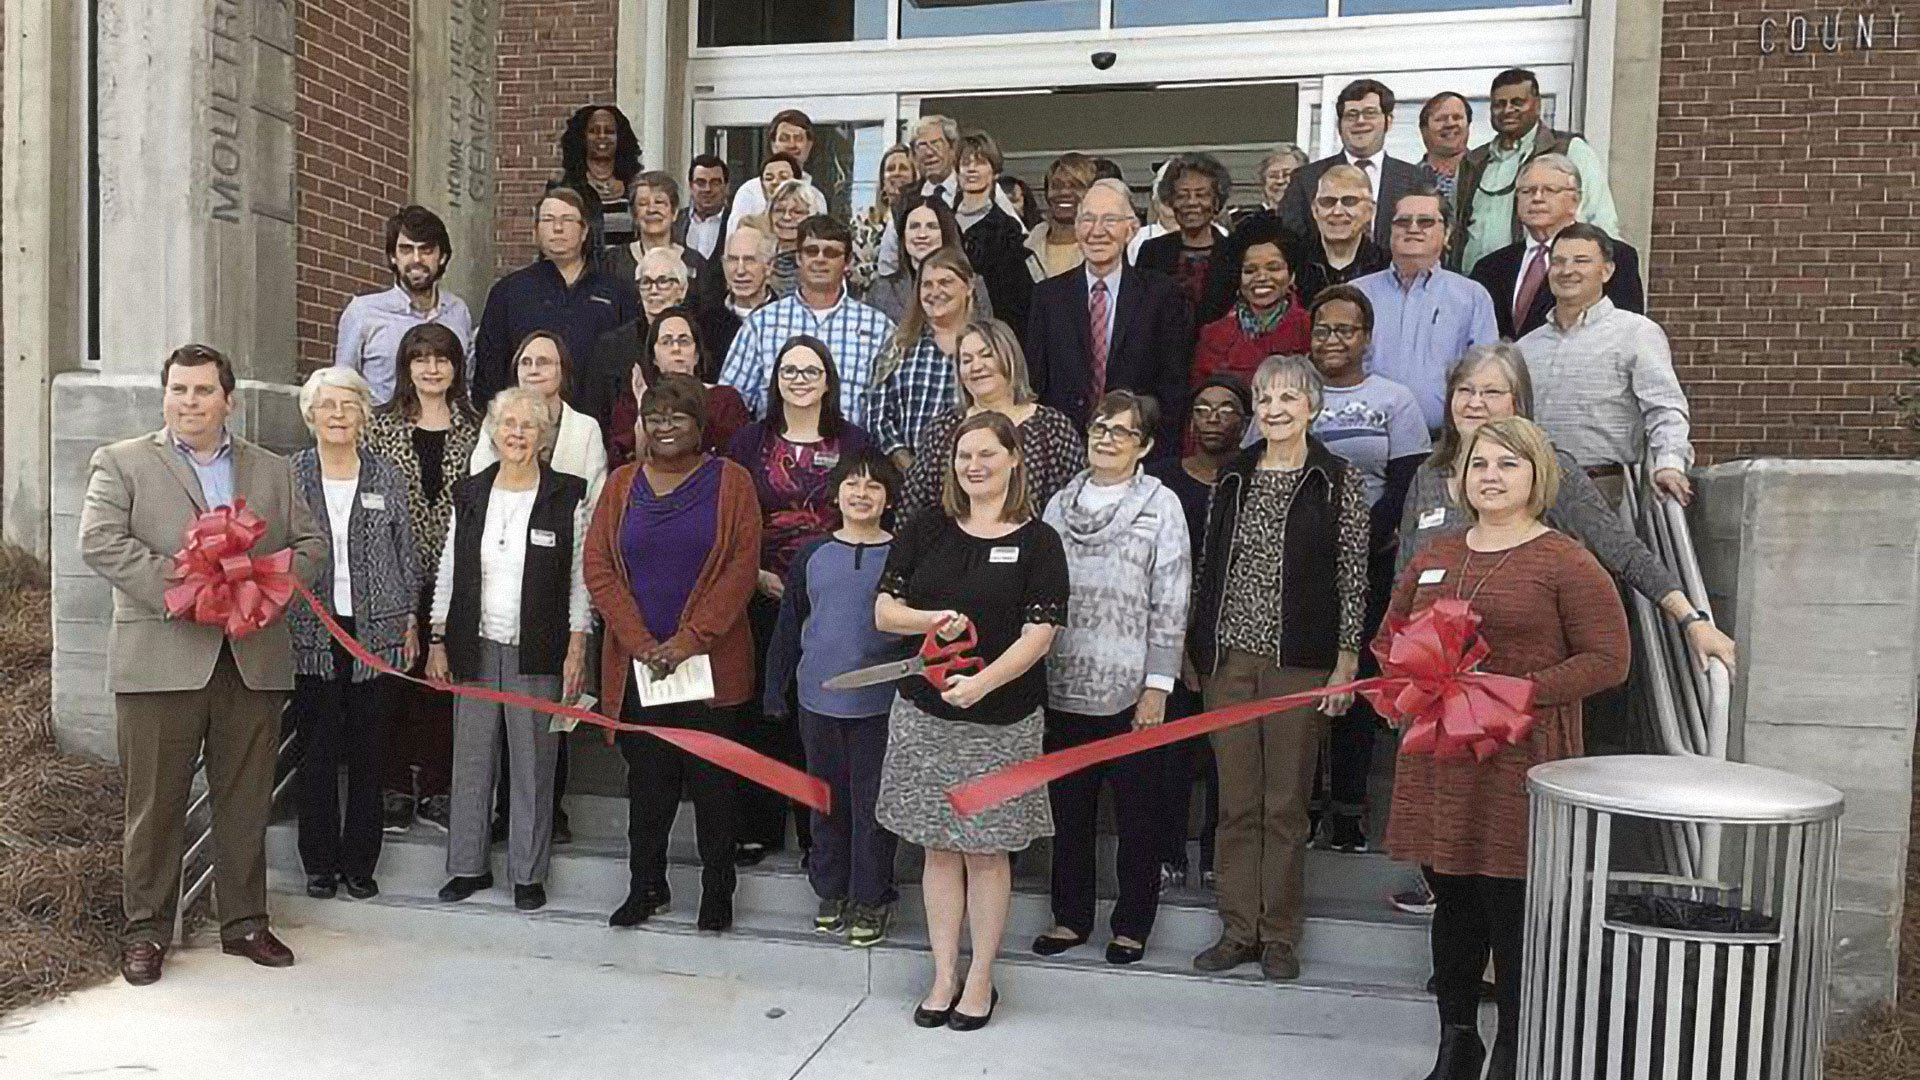 Moultrie-Colquitt County Library, Ribbon Cutting